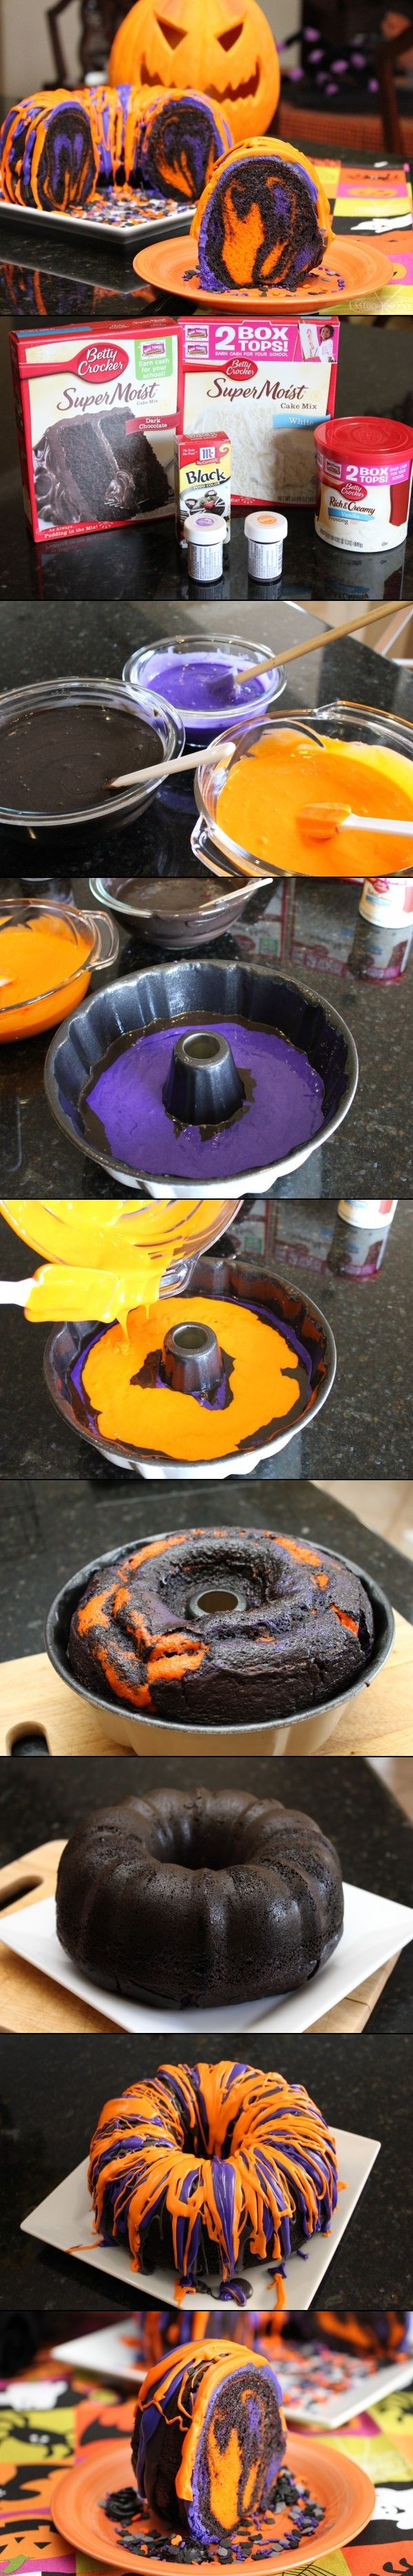 Orange & Purple & Black Cake, maybe use black food coloring instead of the chocolate cake